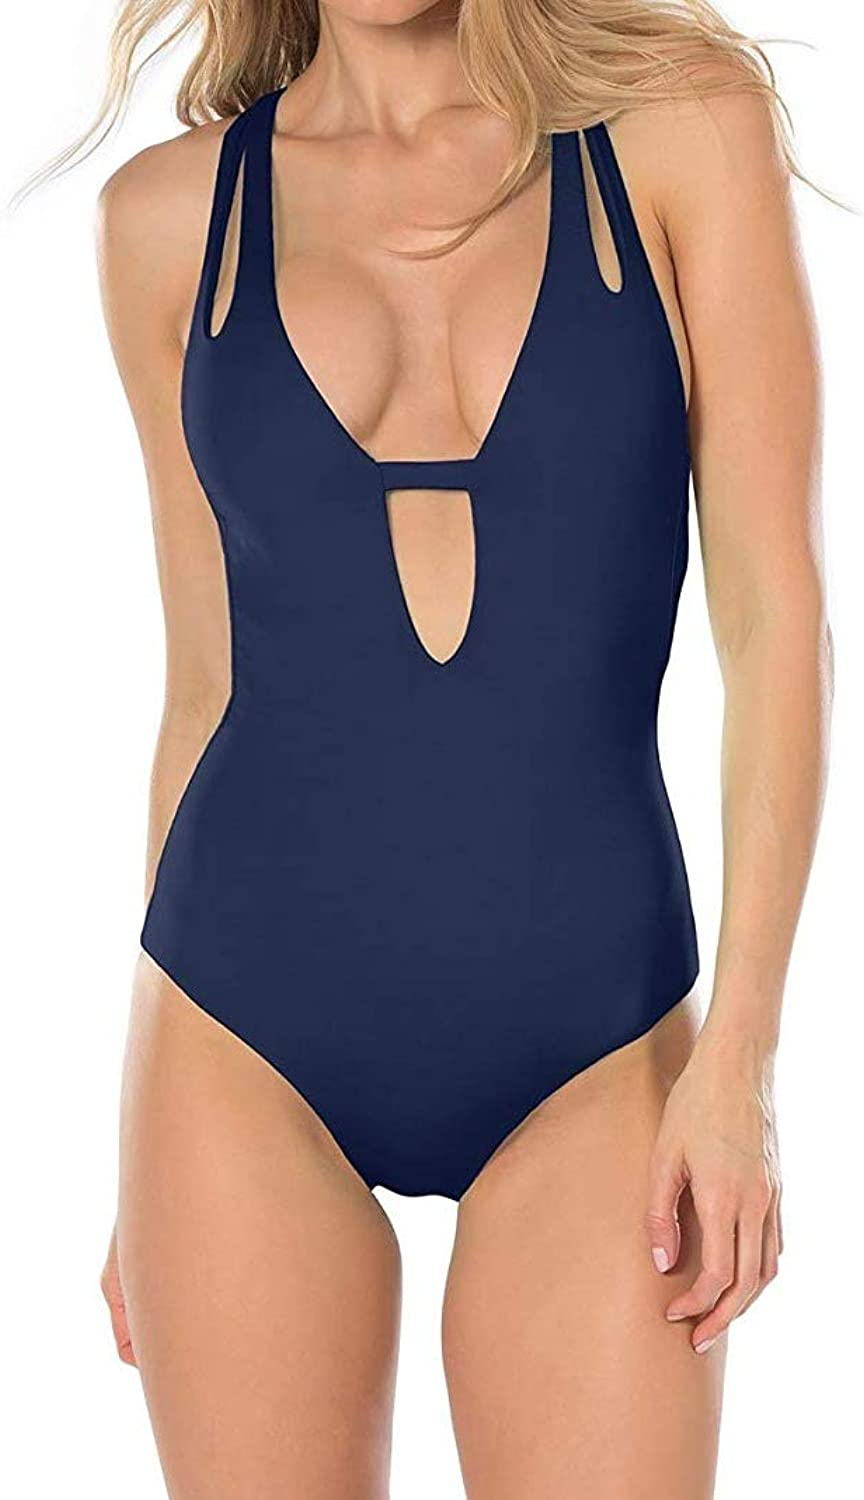 Becca by Rebecca Virtue Women's color Code One Piece Plunge Swimsuit